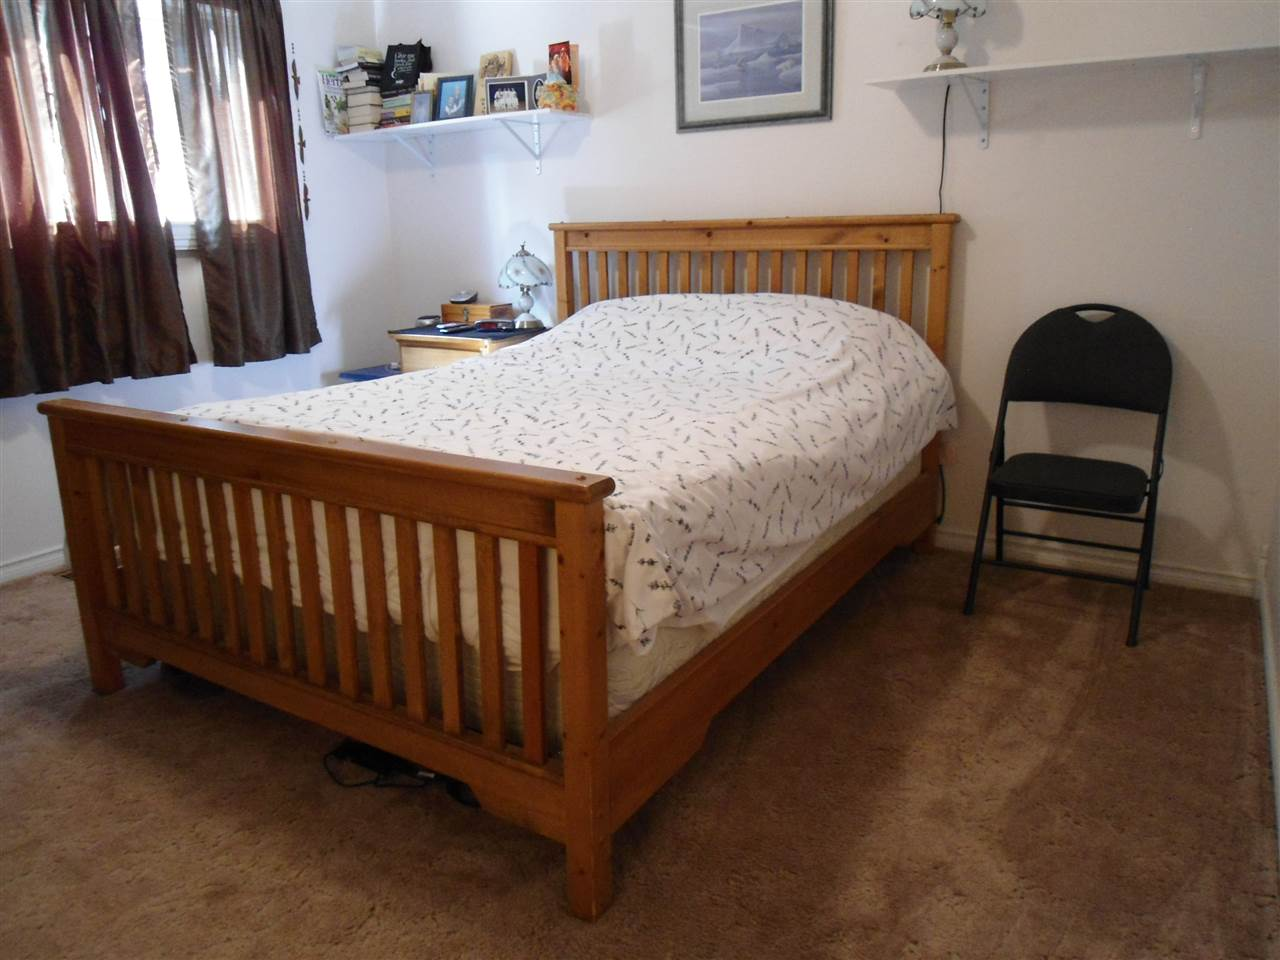 Photo 8: 6243 BERGER Crescent in Prince George: Hart Highlands House for sale (PG City North (Zone 73))  : MLS(r) # R2097859